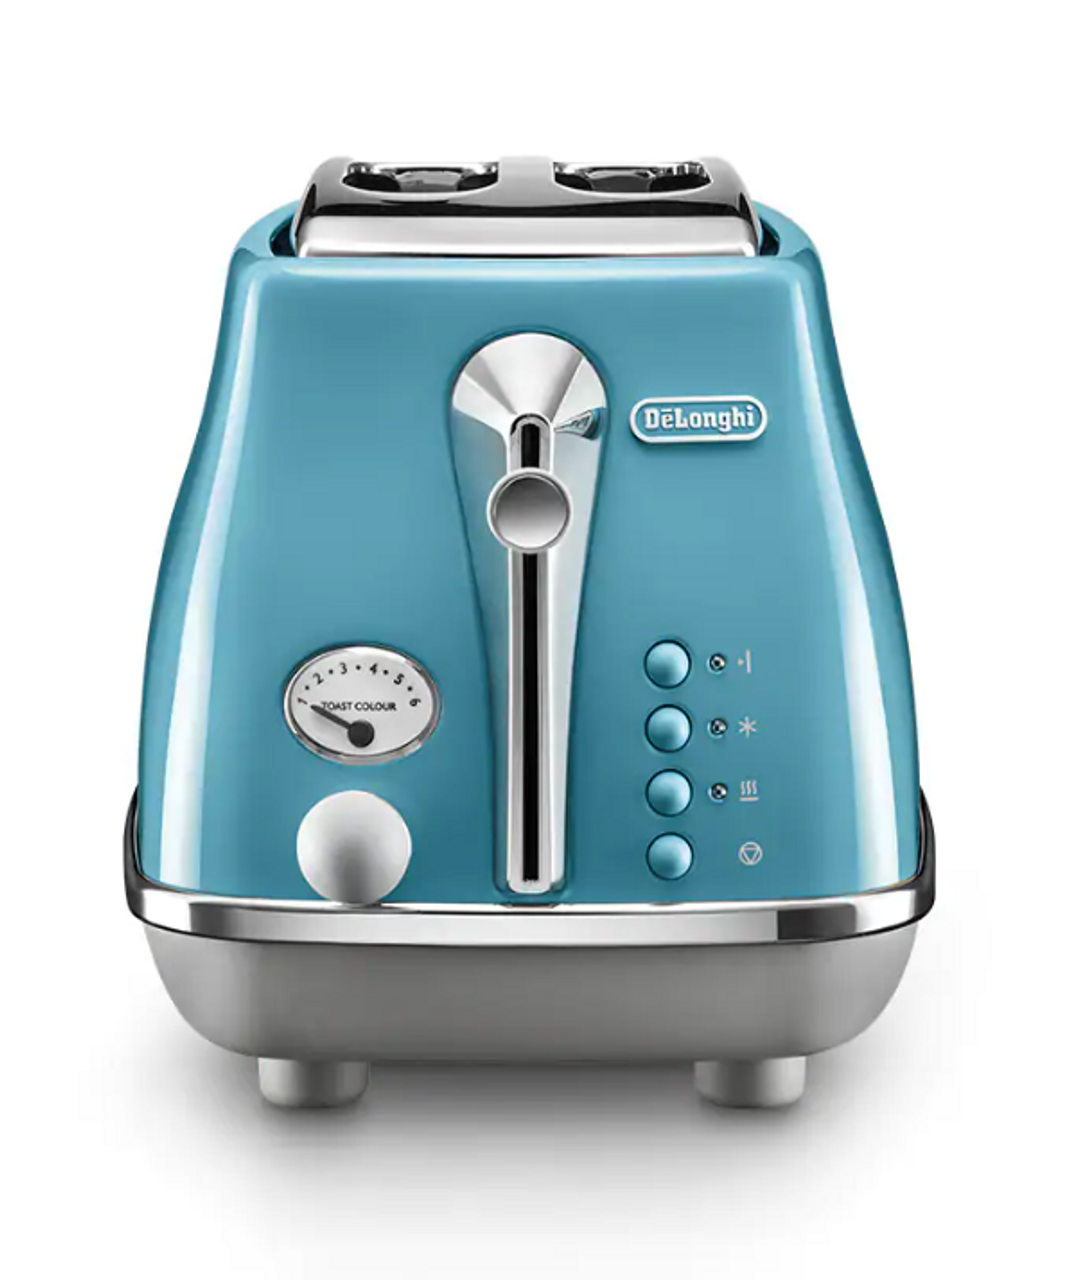 Delonghi CTOC2003AZ/KBOC2001AZ Icona Capitals 2 Slice Toaster + Kettle PACK - Blue